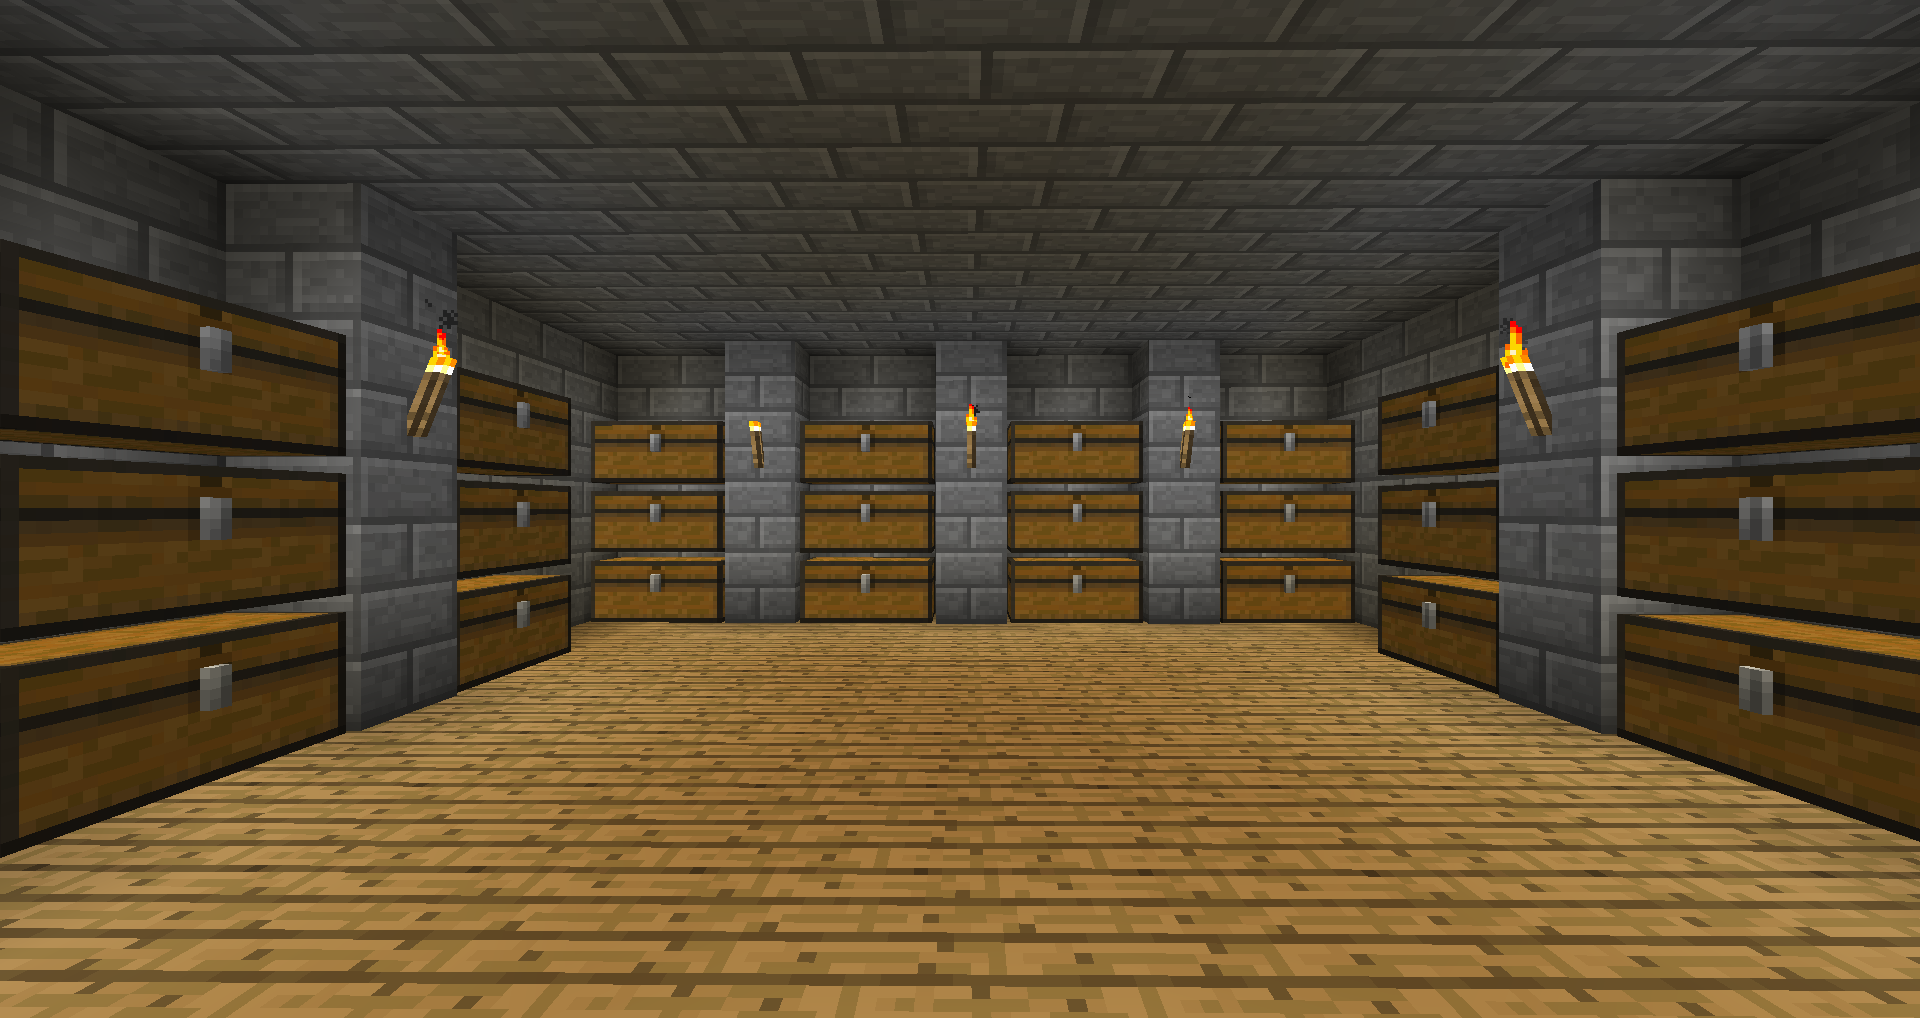 How To Make A Hidden Underground Room In Minecraft